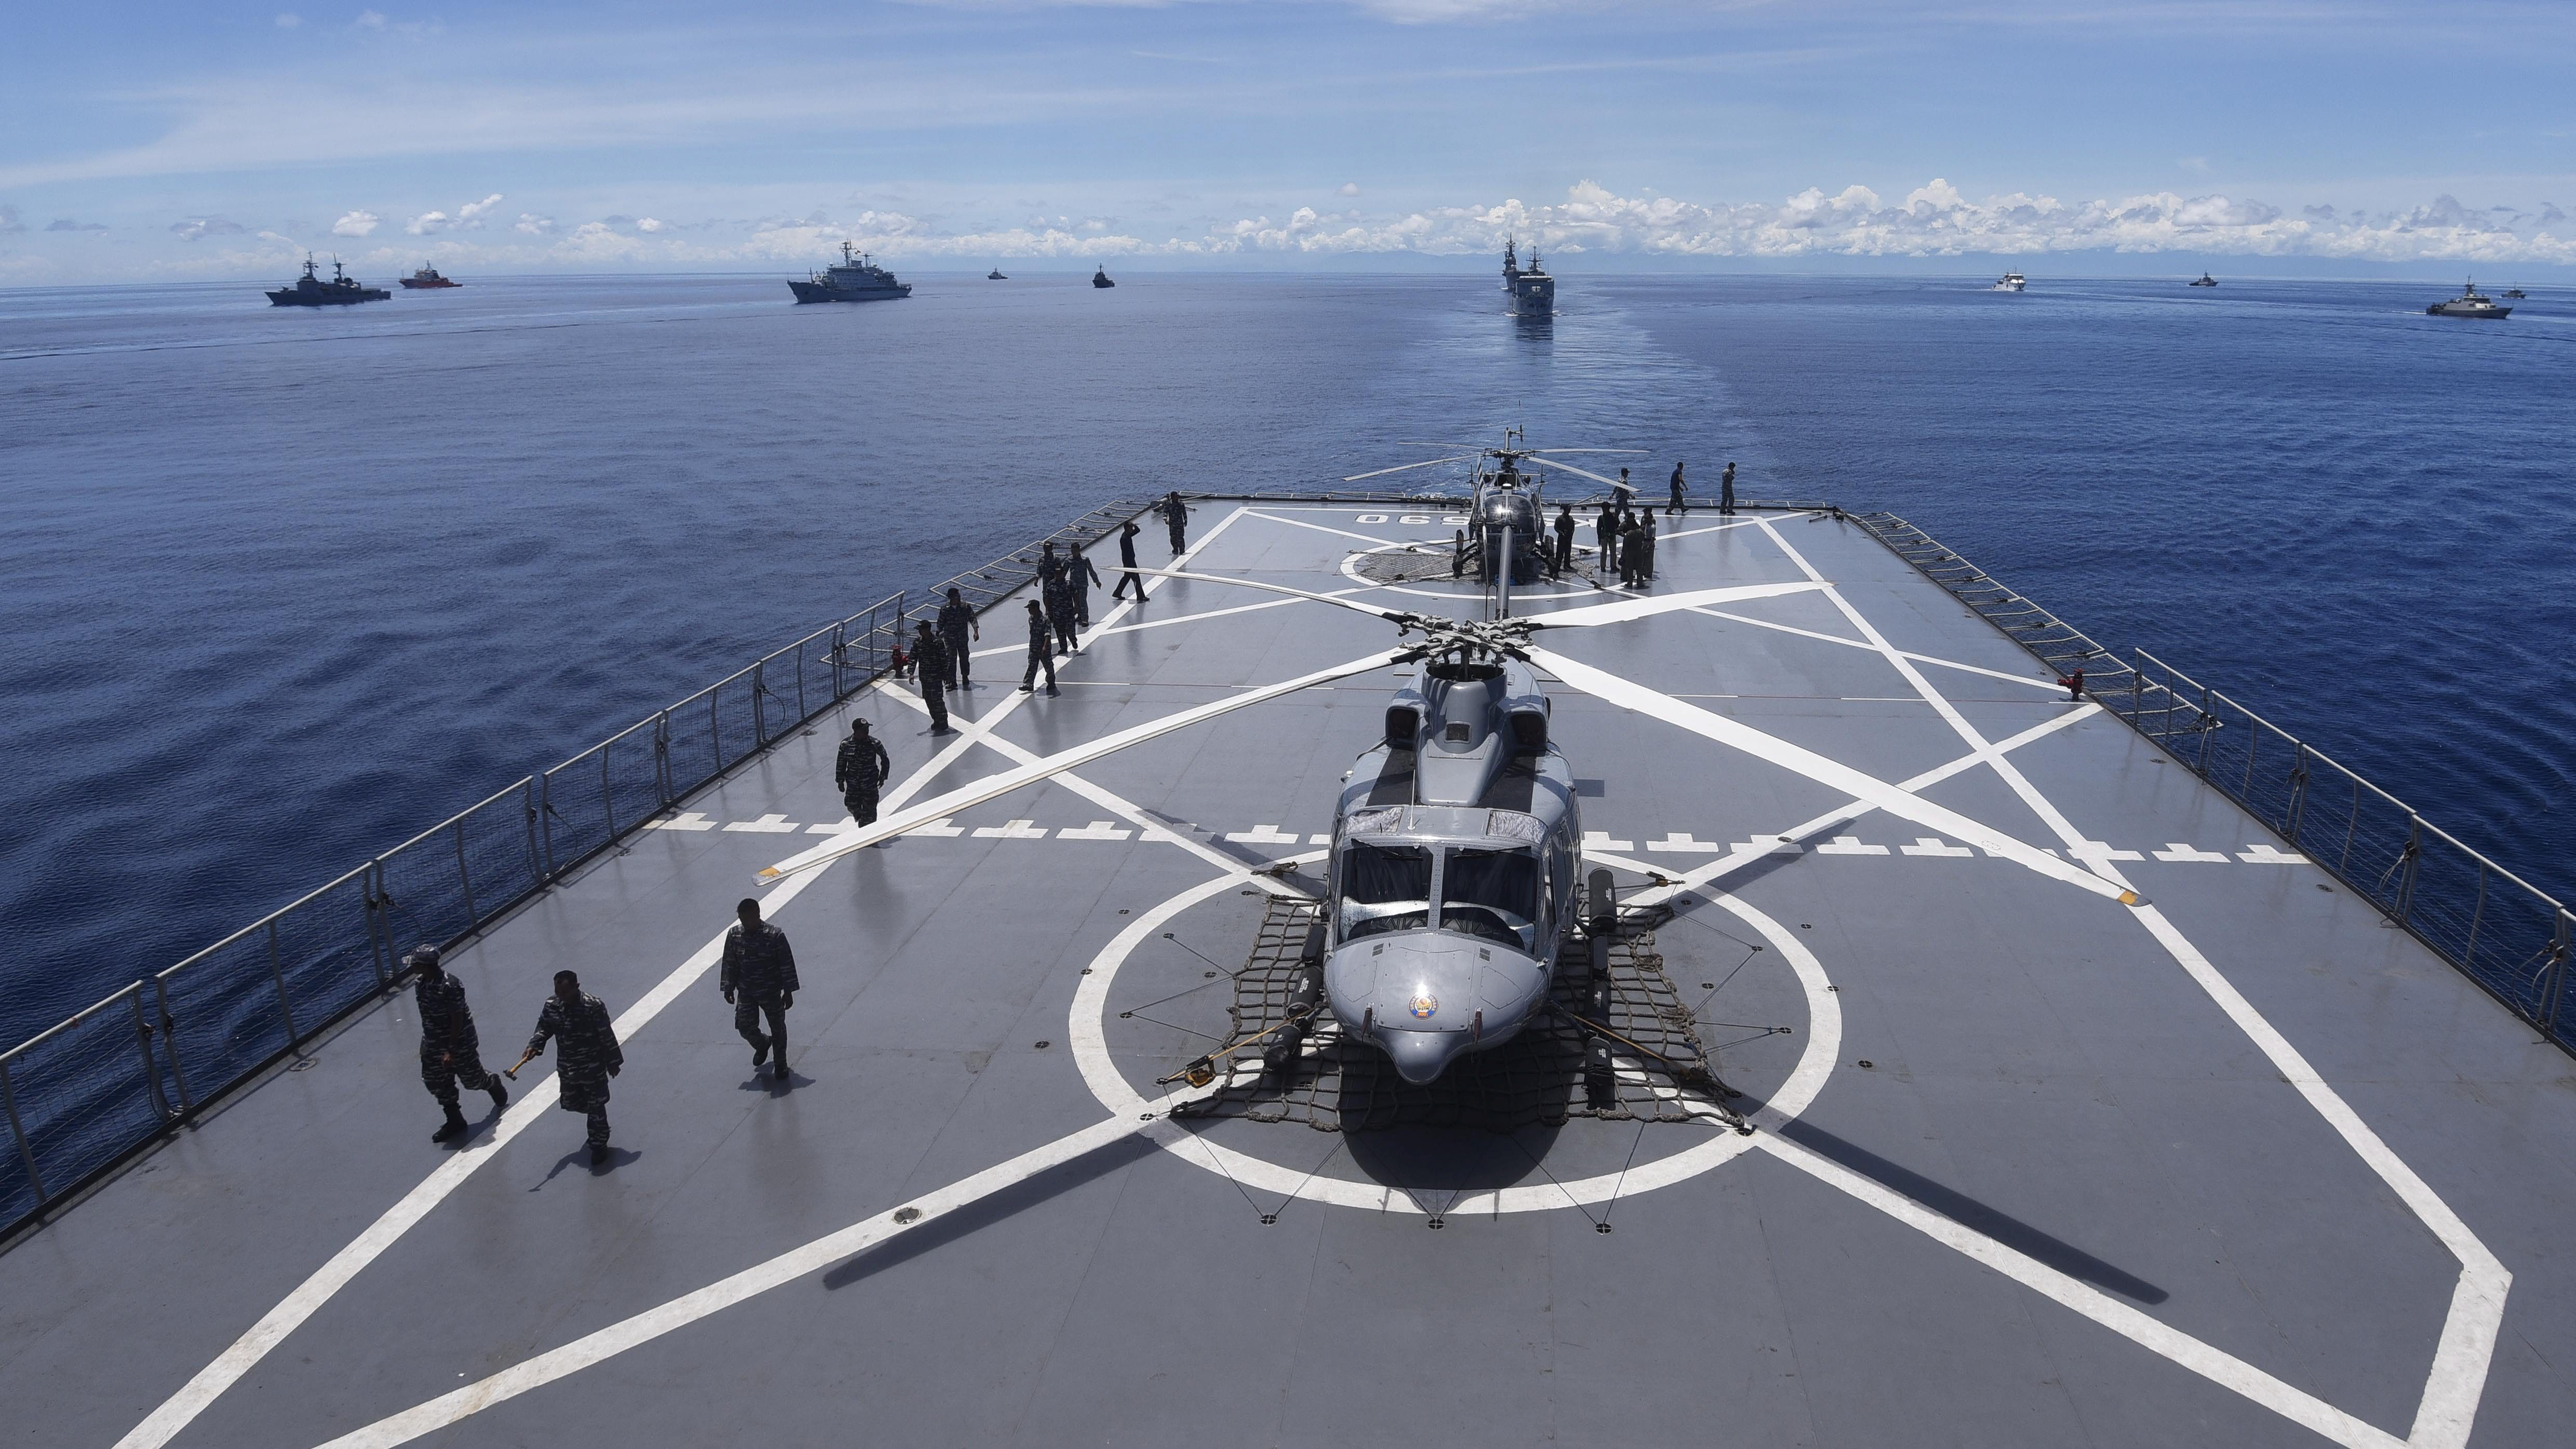 Navy helicopters are seen on Indonesian ship during Komodo Exercise 2016, a 5-day multinational exercise to improve emergency response and strengthen humanitarian relief efforts, near the Mentawai Islands off the coast of West Sumatra, Indonesia